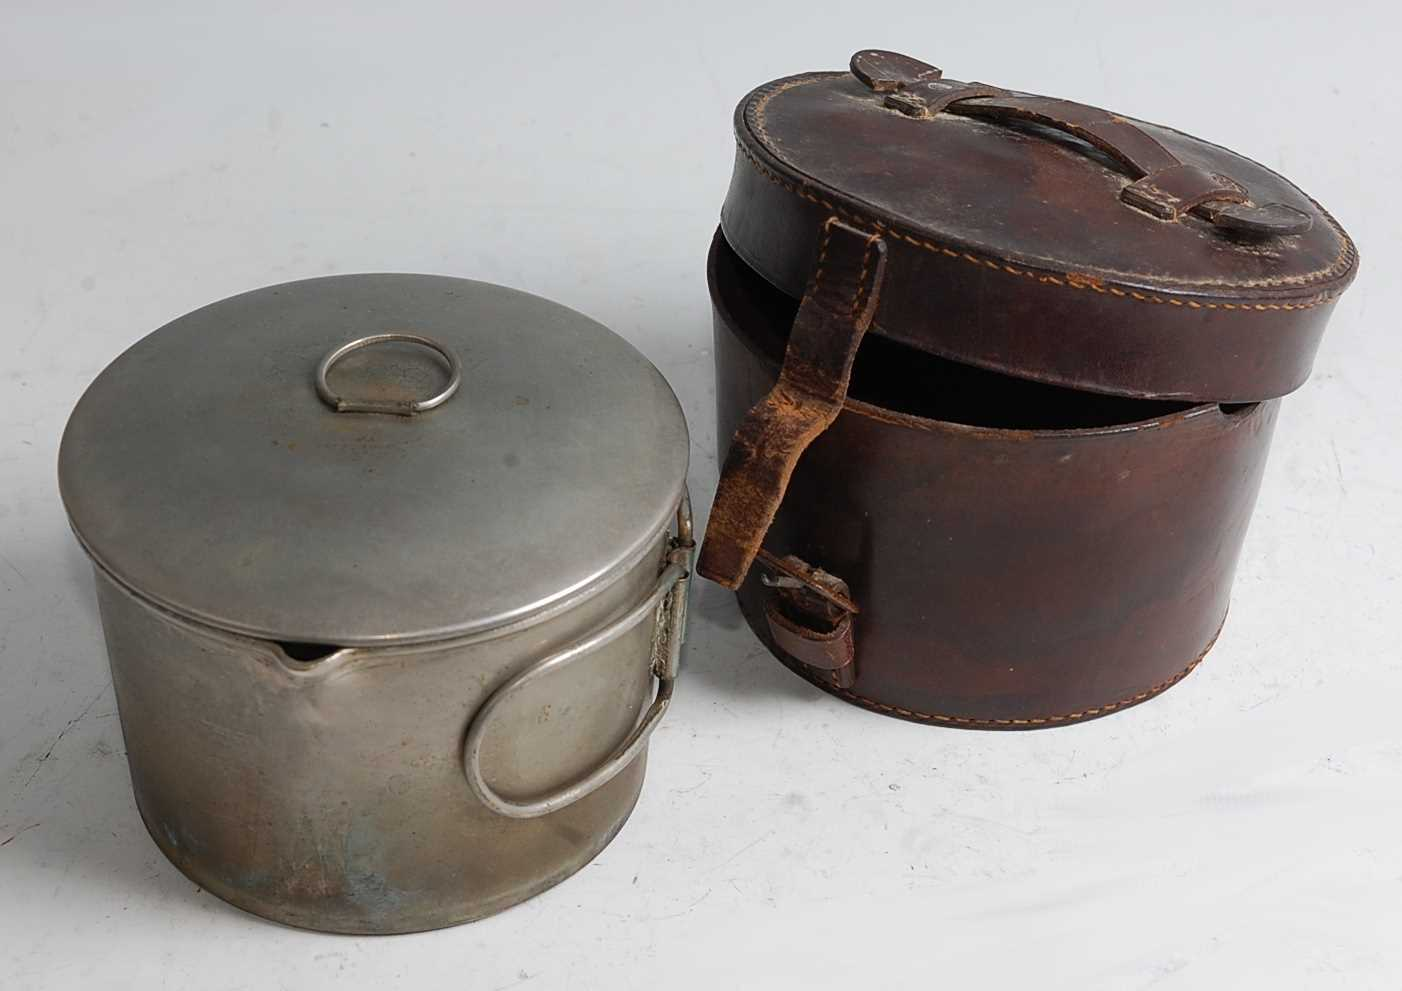 An Army & Navy Co-op Stores Ltd. campaign spirit stove and saucepan, in fitted leather case,